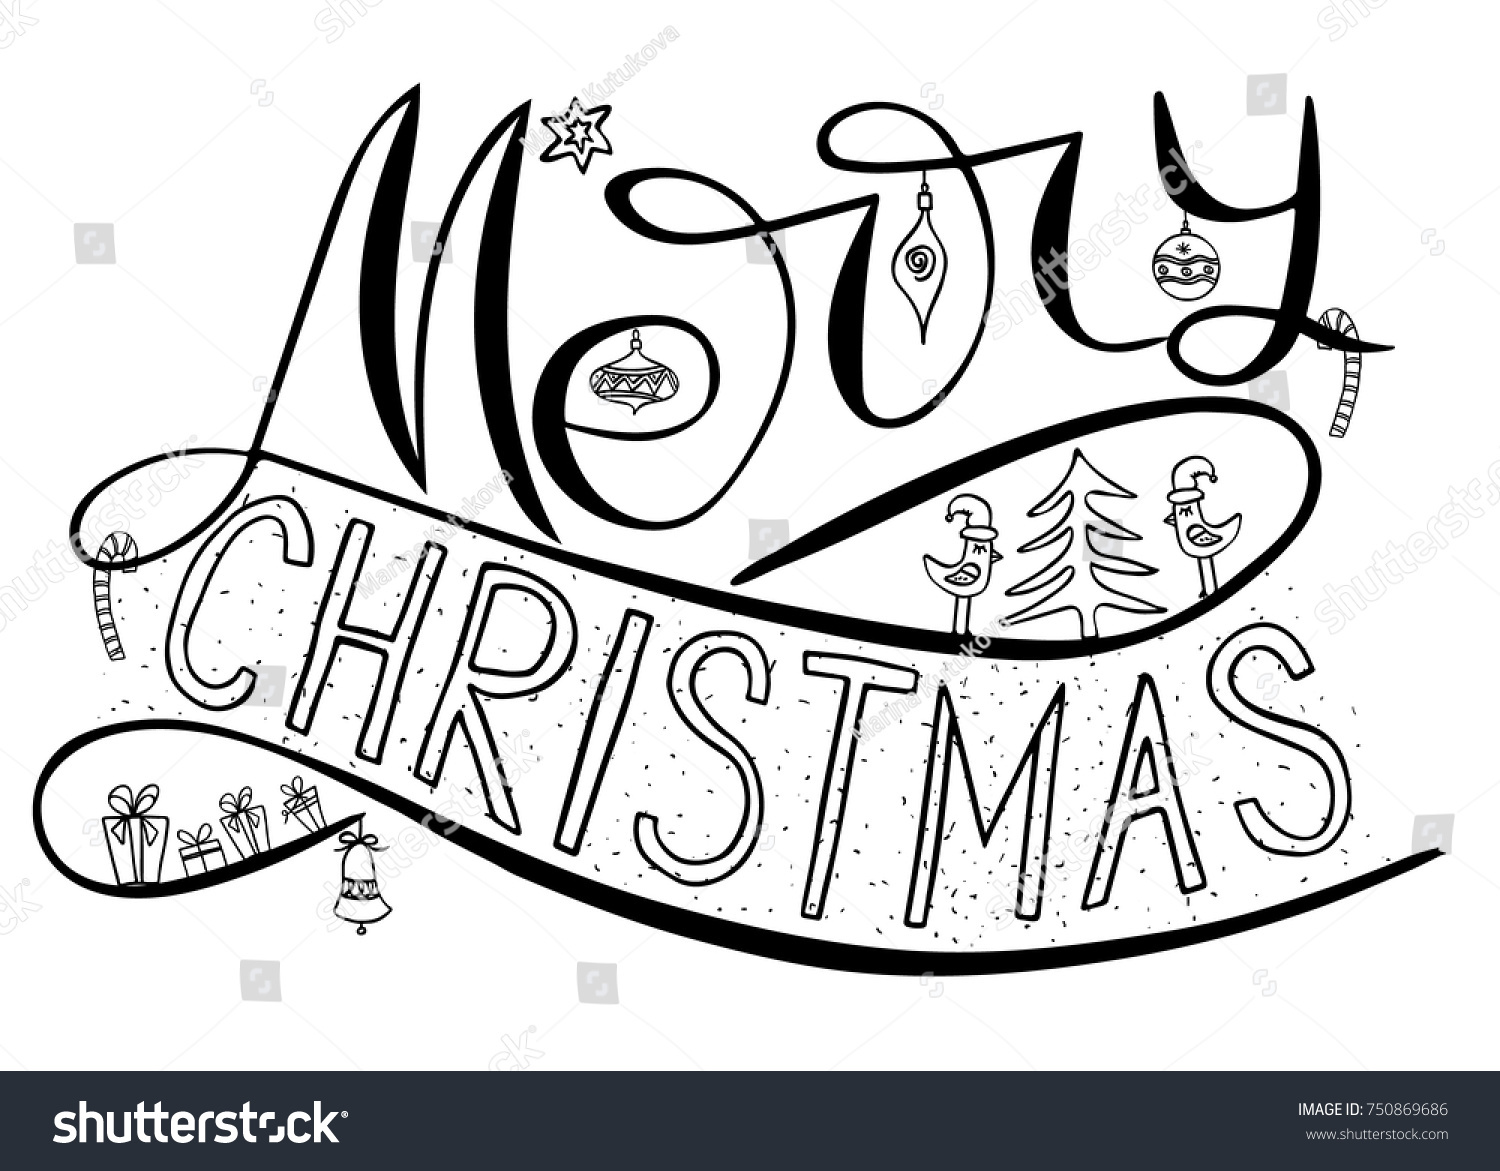 Merry Christmas Card Brush Calligraphy New Stock Vector (Royalty ...